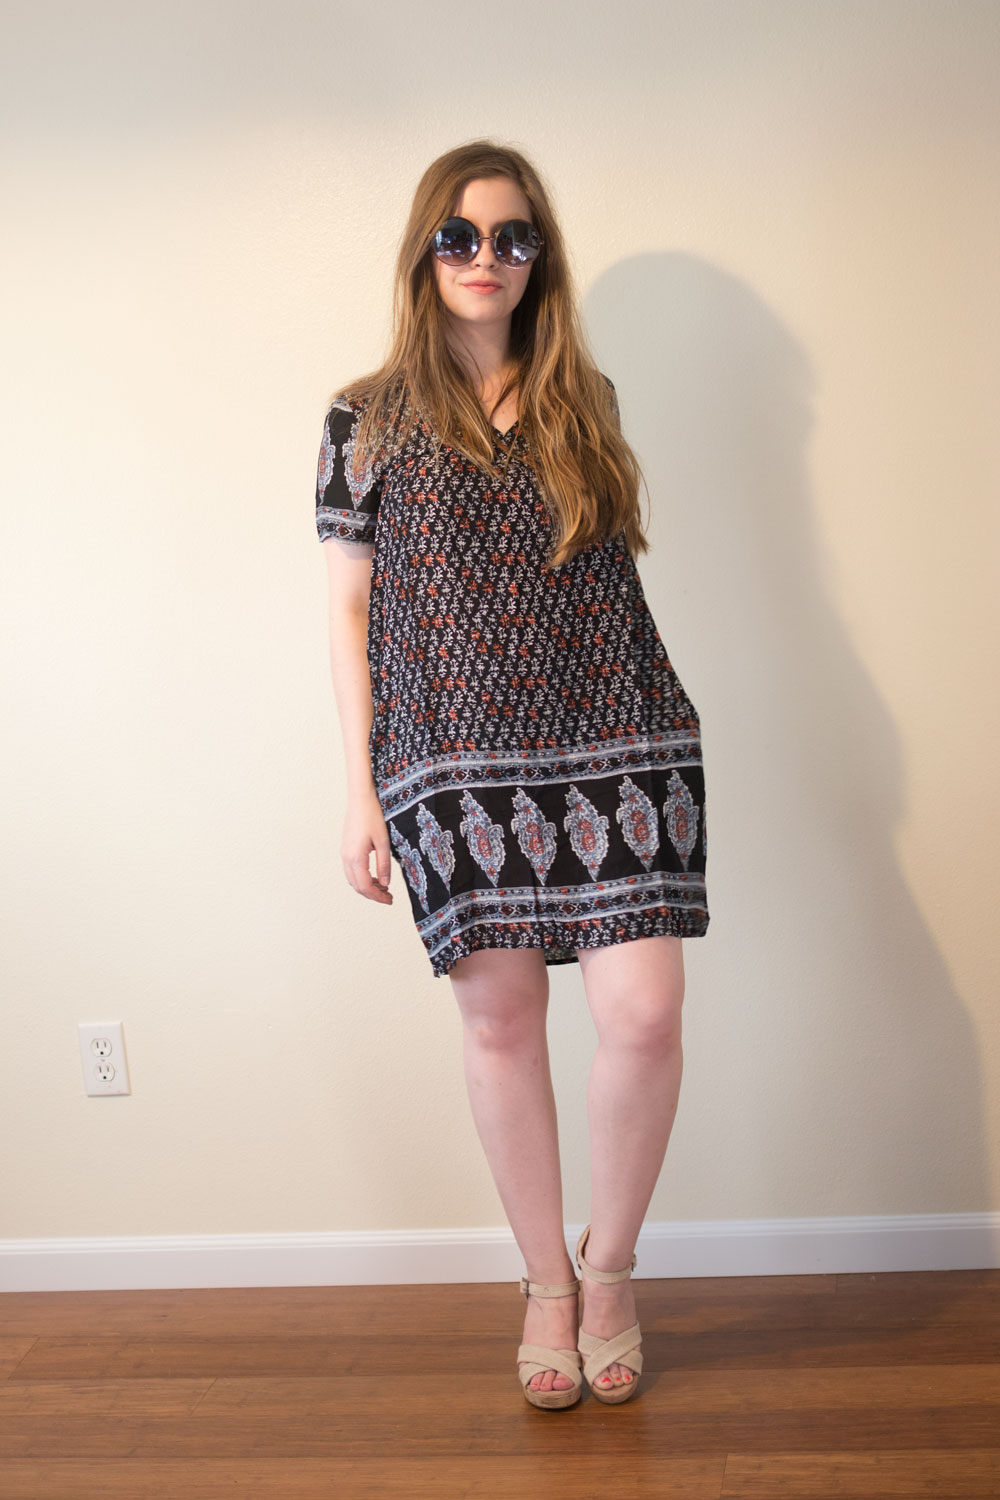 Dailylook Elite August 2015 Review & Styling: Quay Round Lens Sunglasses in Copper and Bryce Paisley Shift Dress // hellorigby seattle fashion blog